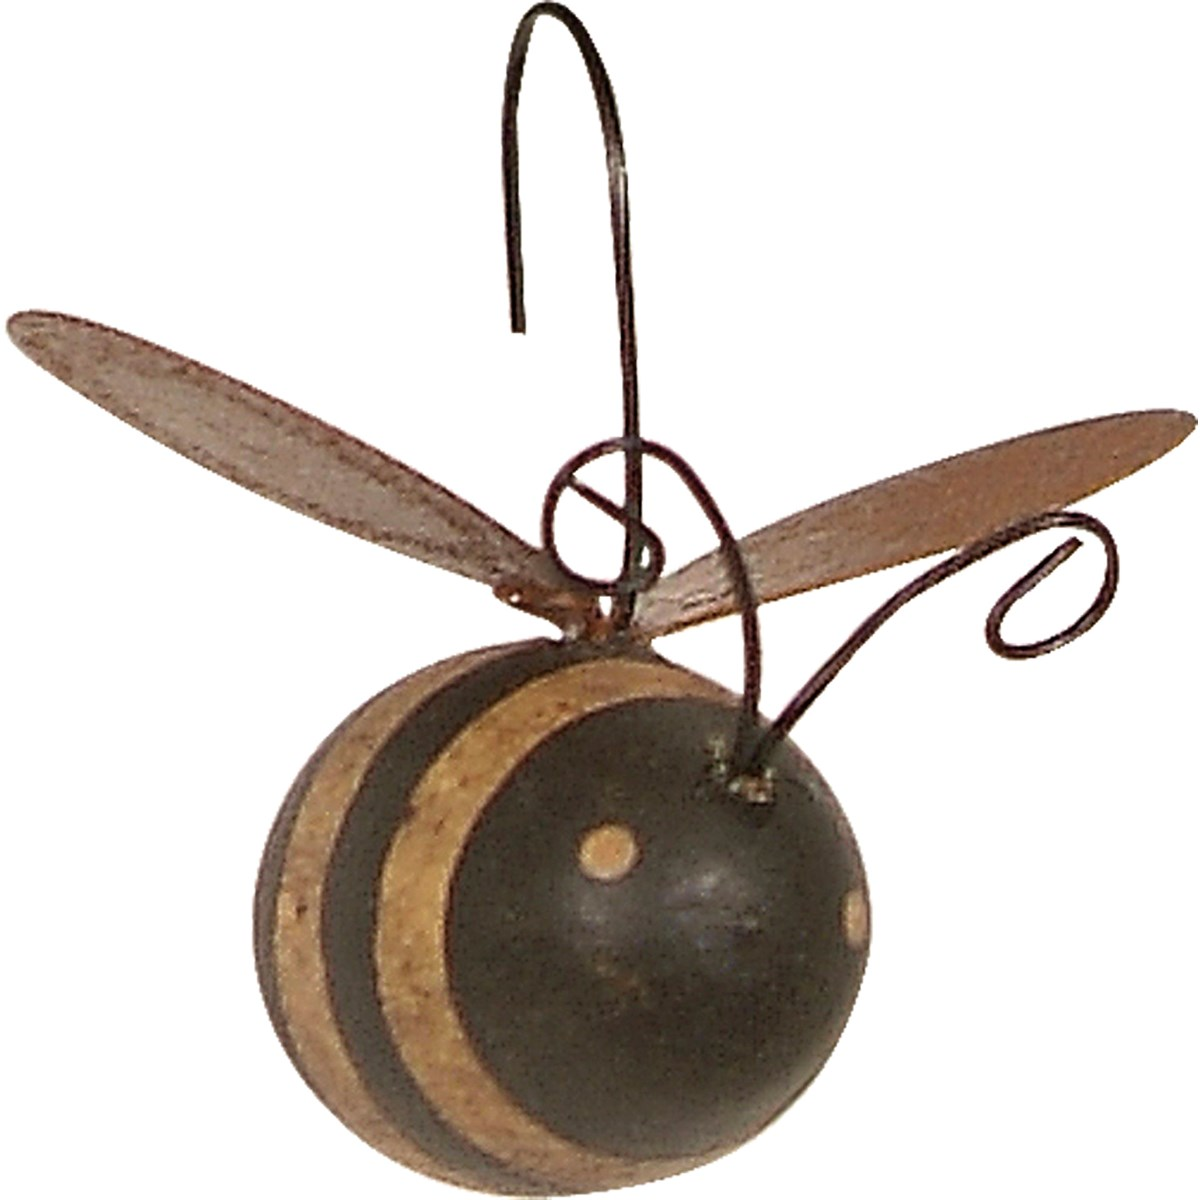 "Ornament Set - Bees - 1"" x 1.50"" x 1.50"" - Wood, Metal, Wire"